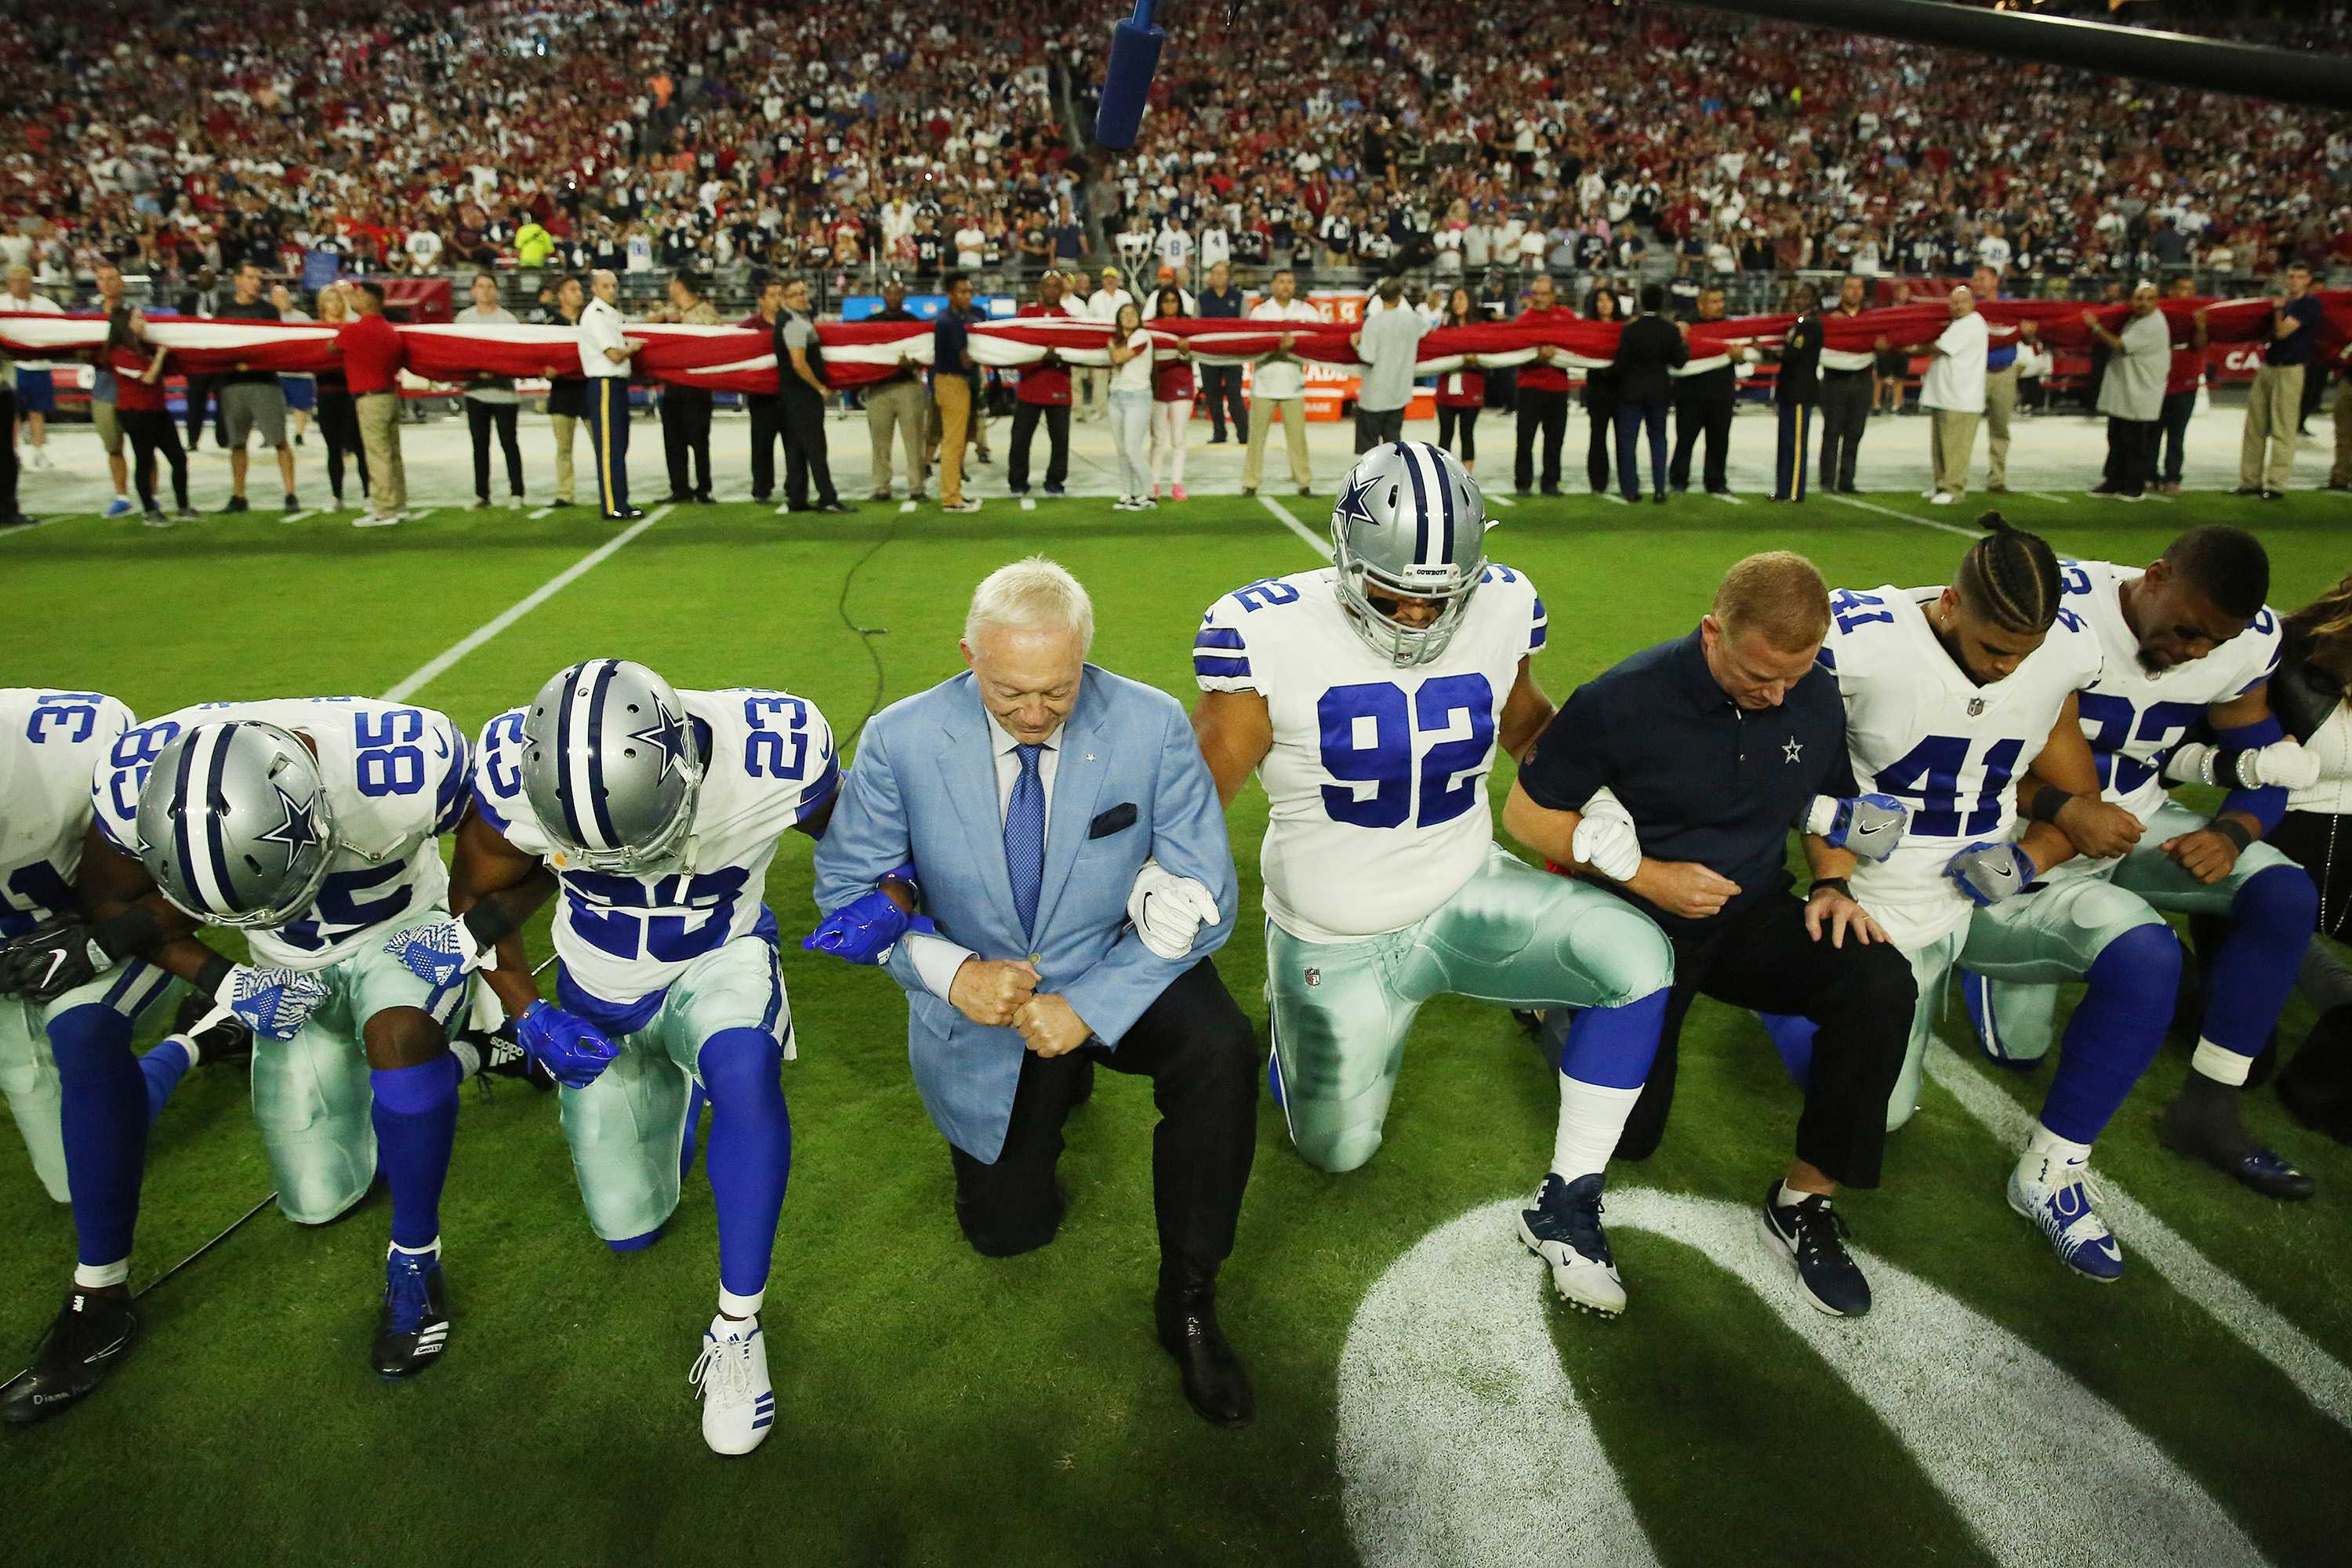 Dallas Cowboys players and staff including owner Jerry Jones and head coach Jason Garrett all take a knee before the singing of the National Anthem prior to the start of a game against the Arizona Cardinals at University of Phoenix Stadium Monday, Sept. 25, 2017 in Glendale, Ariz. (Vernon Bryant/Dallas Morning News/TNS)